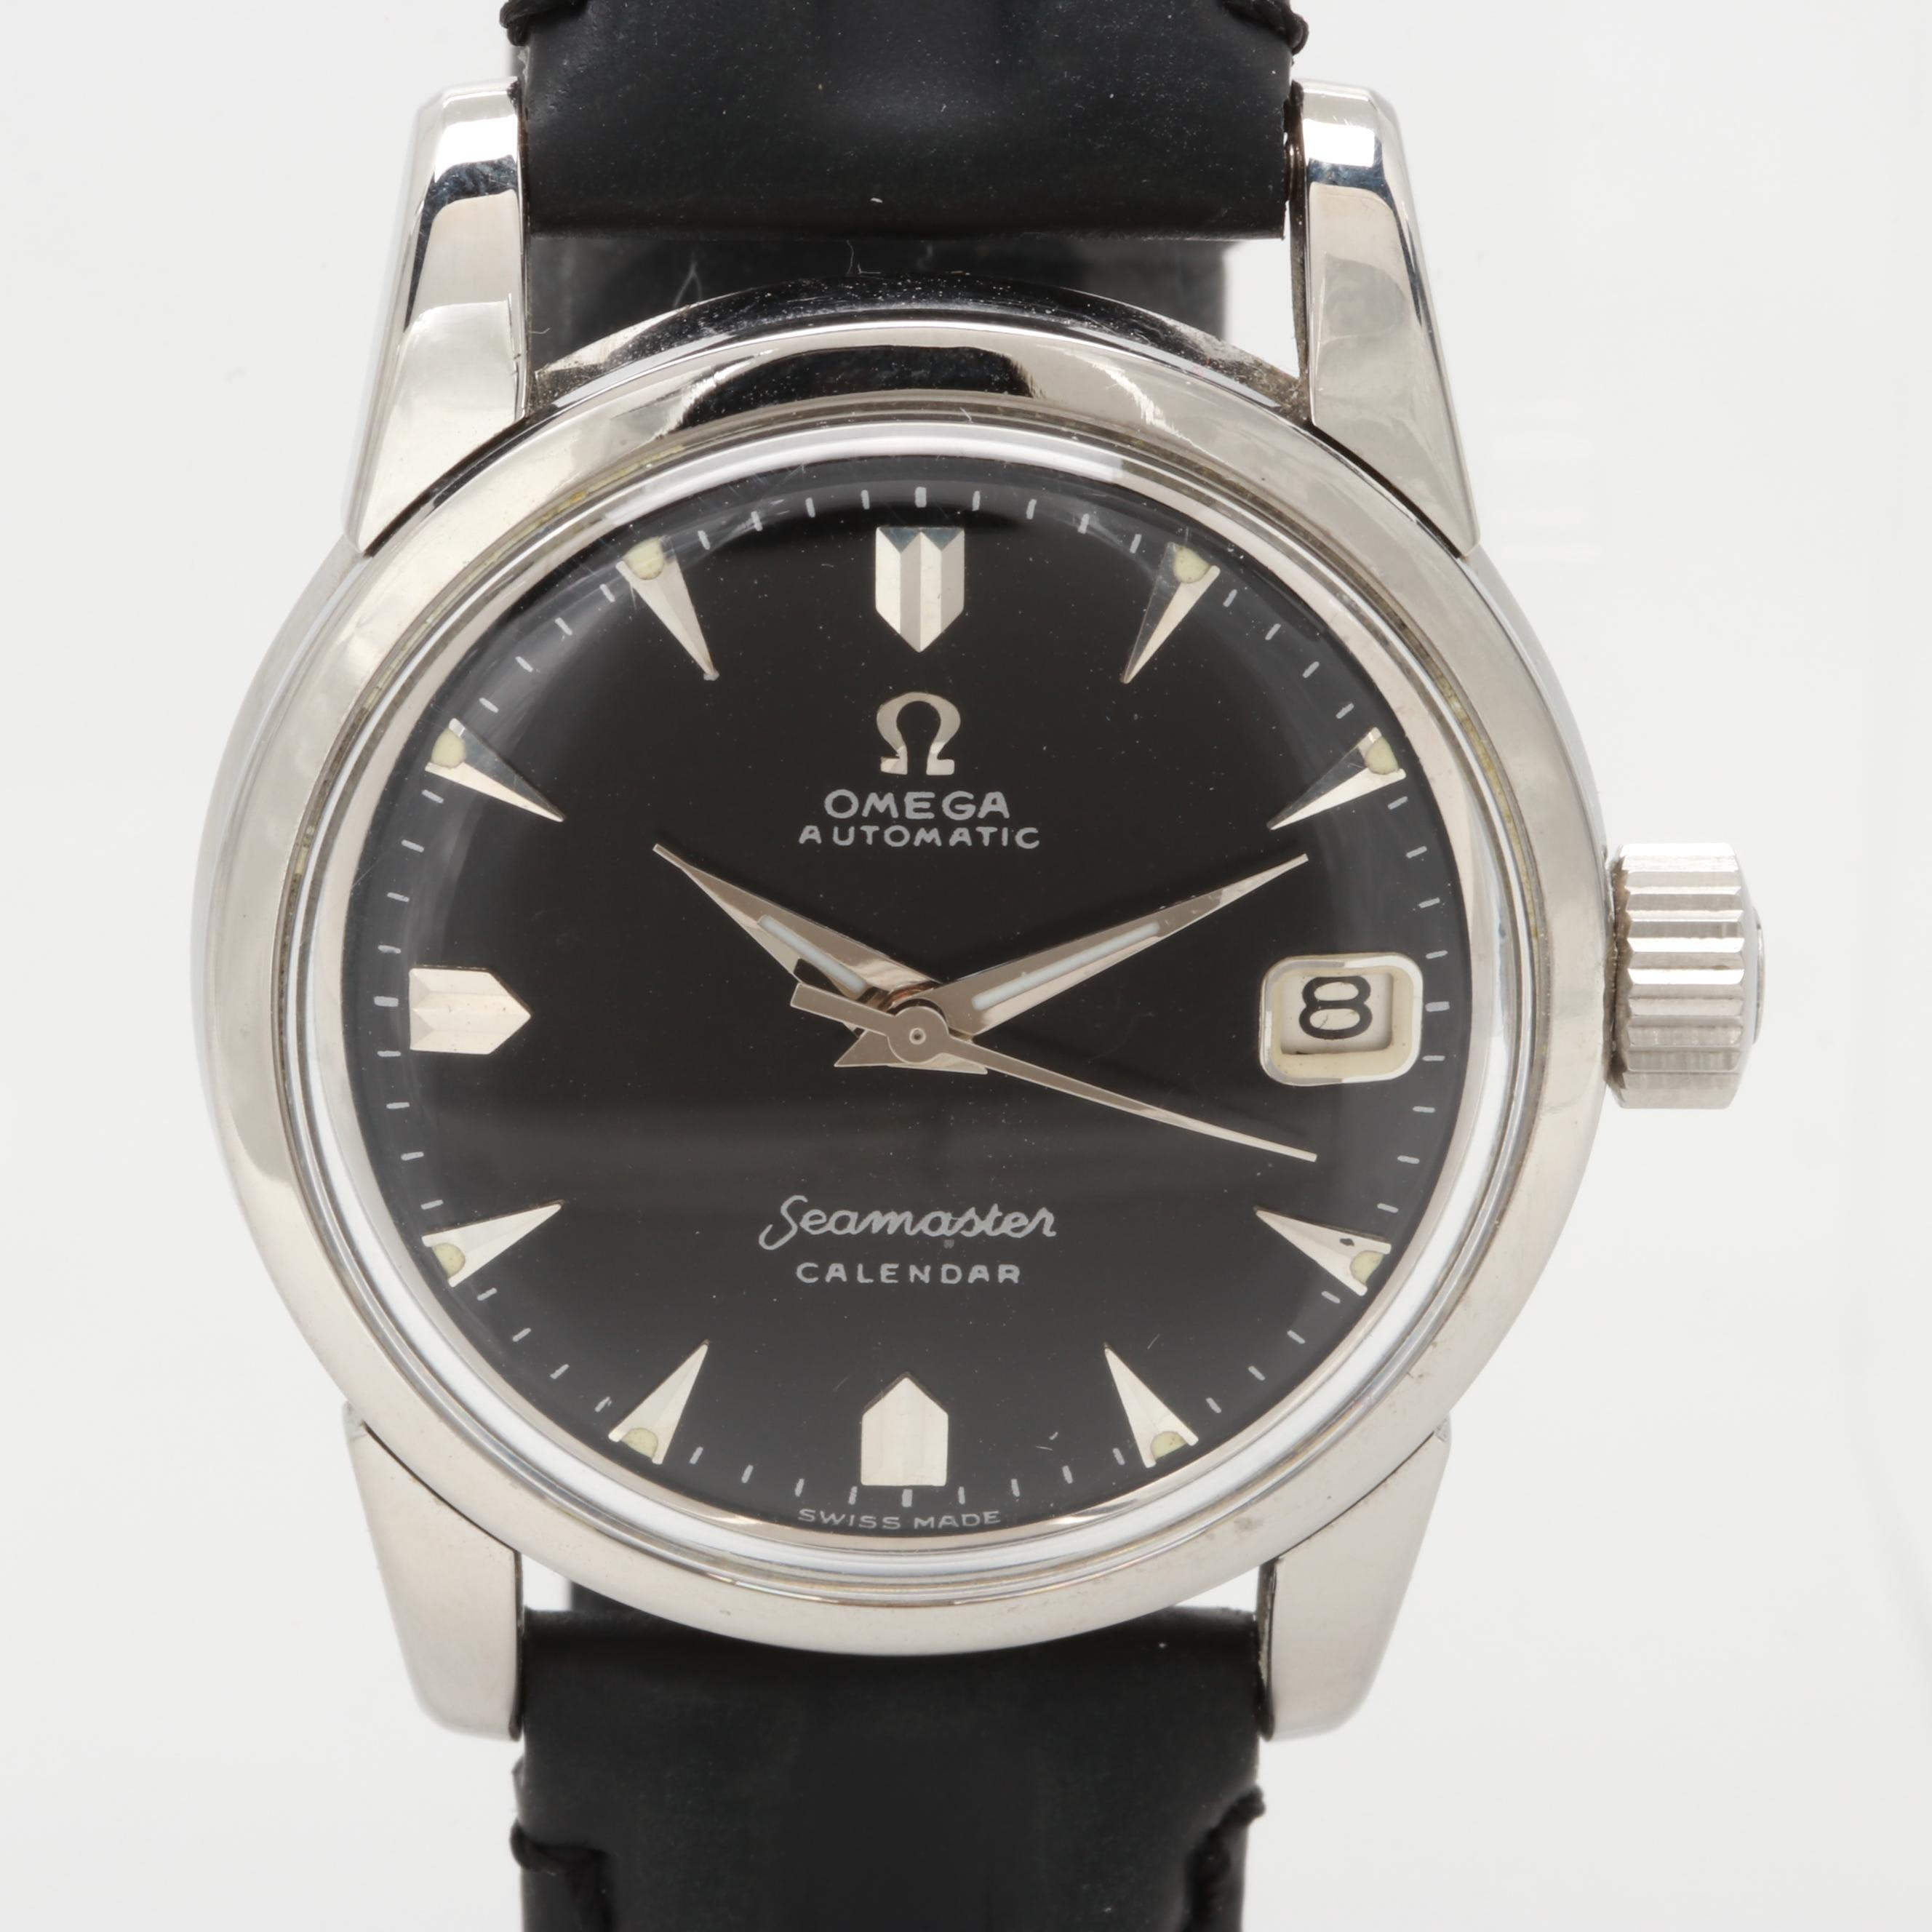 Omega Stainless Steel Seamaster Automatic Wristwatch With Calendar, Circa 1960